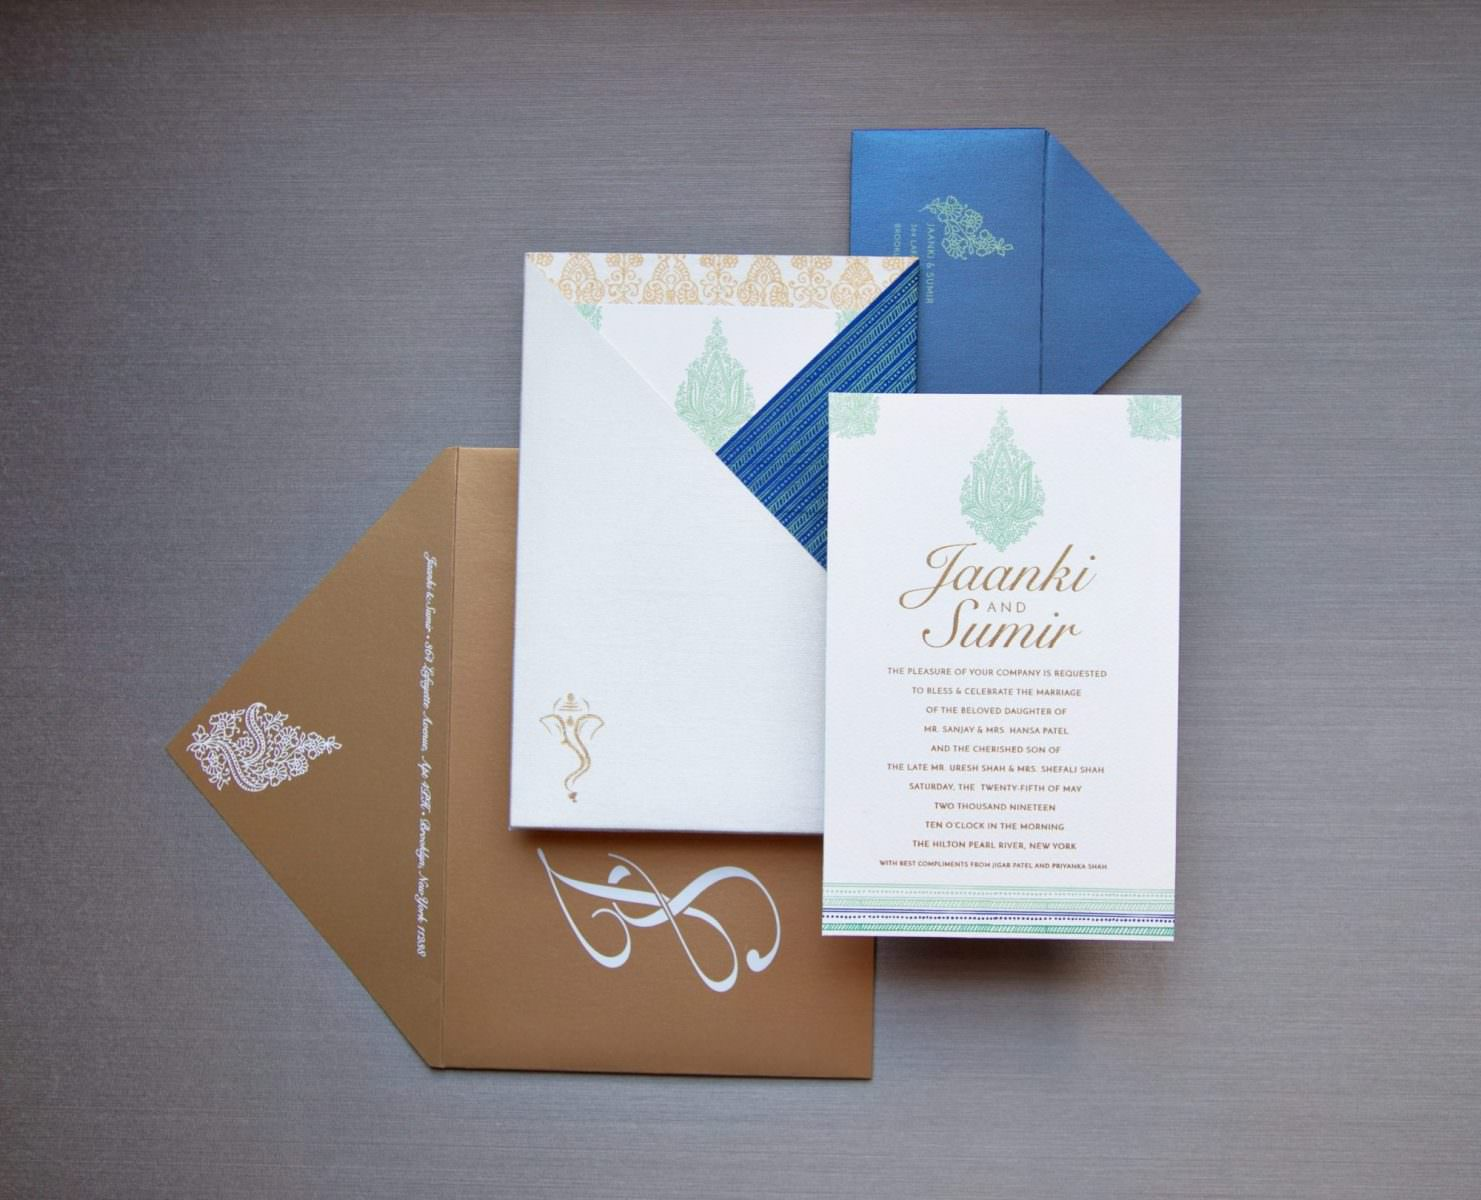 Raw Silk Pocket with custom printed invitation for Indian Wedding